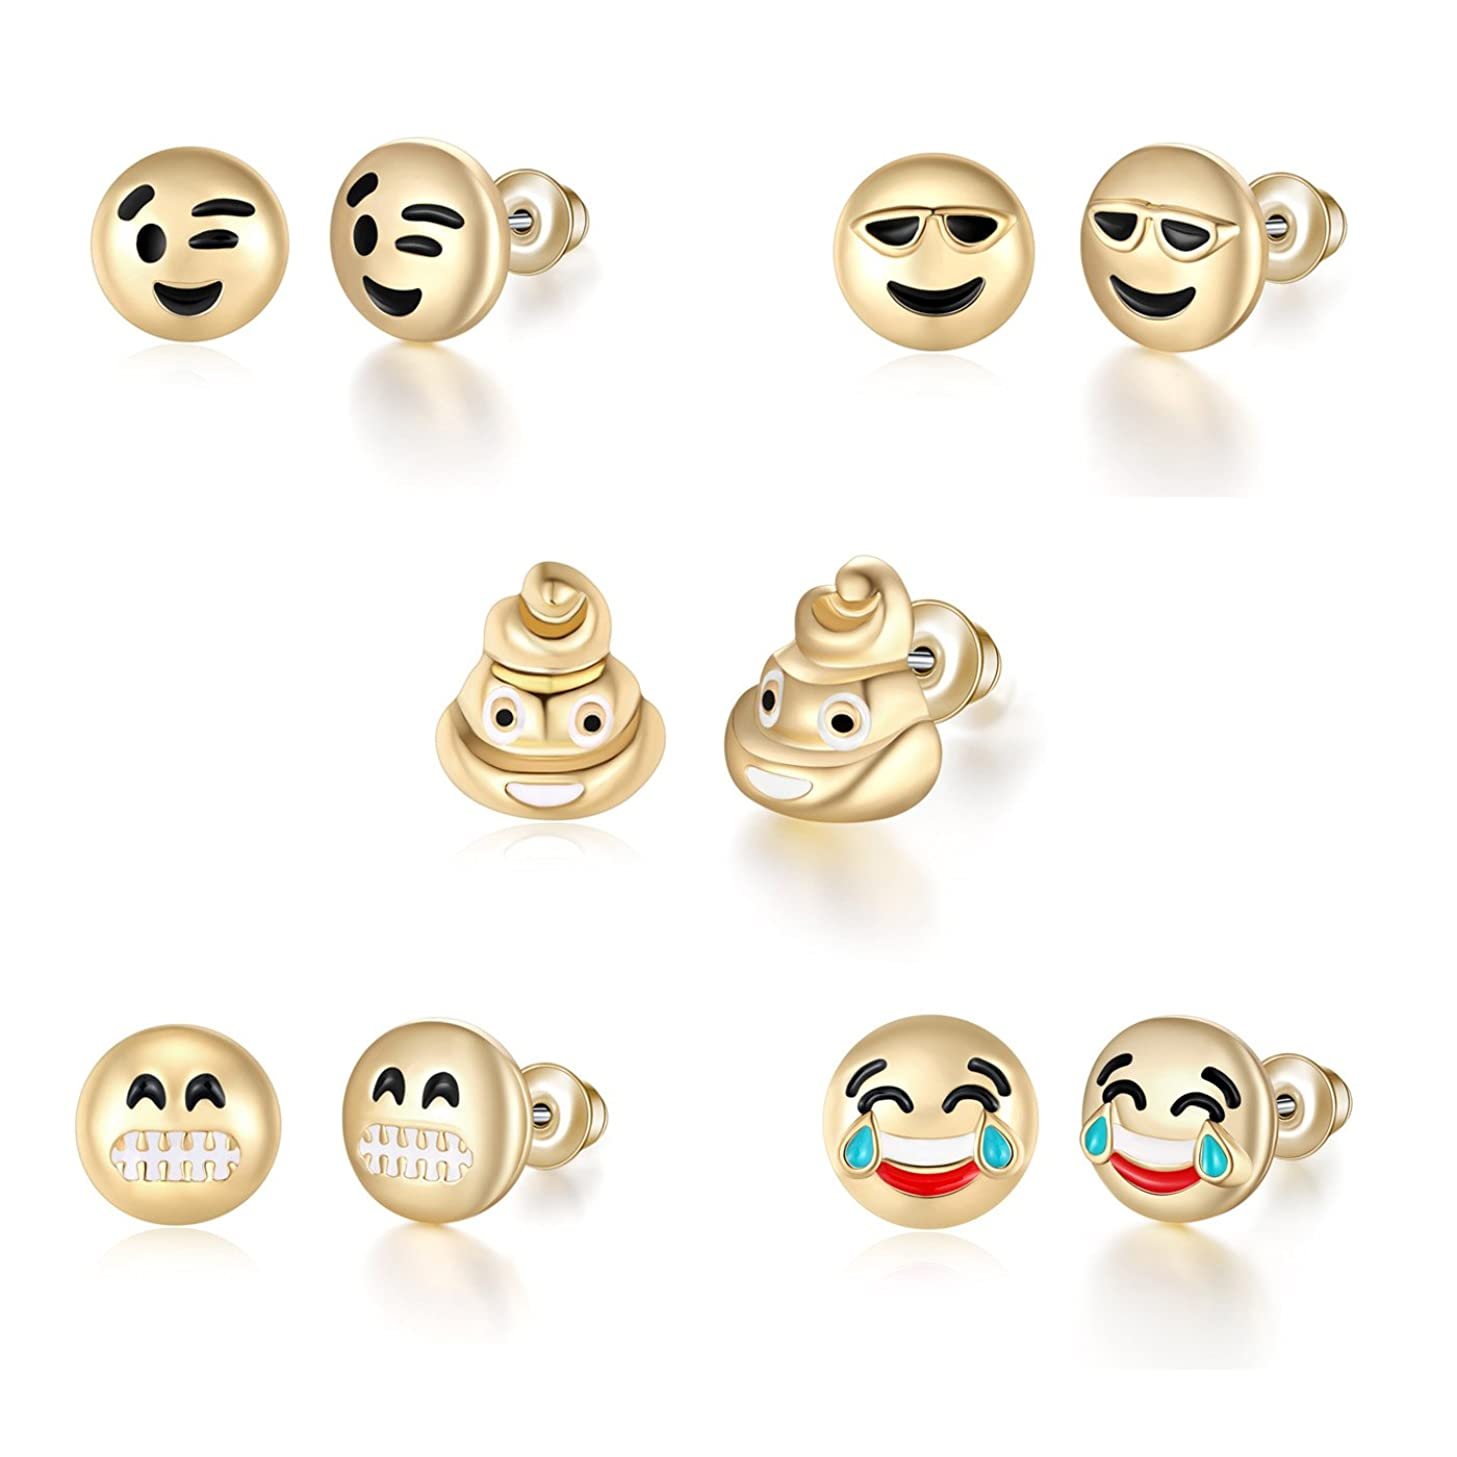 T-PERFECT LIFE 5pcs 18K Gold Plated Cute Smile Emoji Faces Charms Stud Earrings Set (cool poo poop)